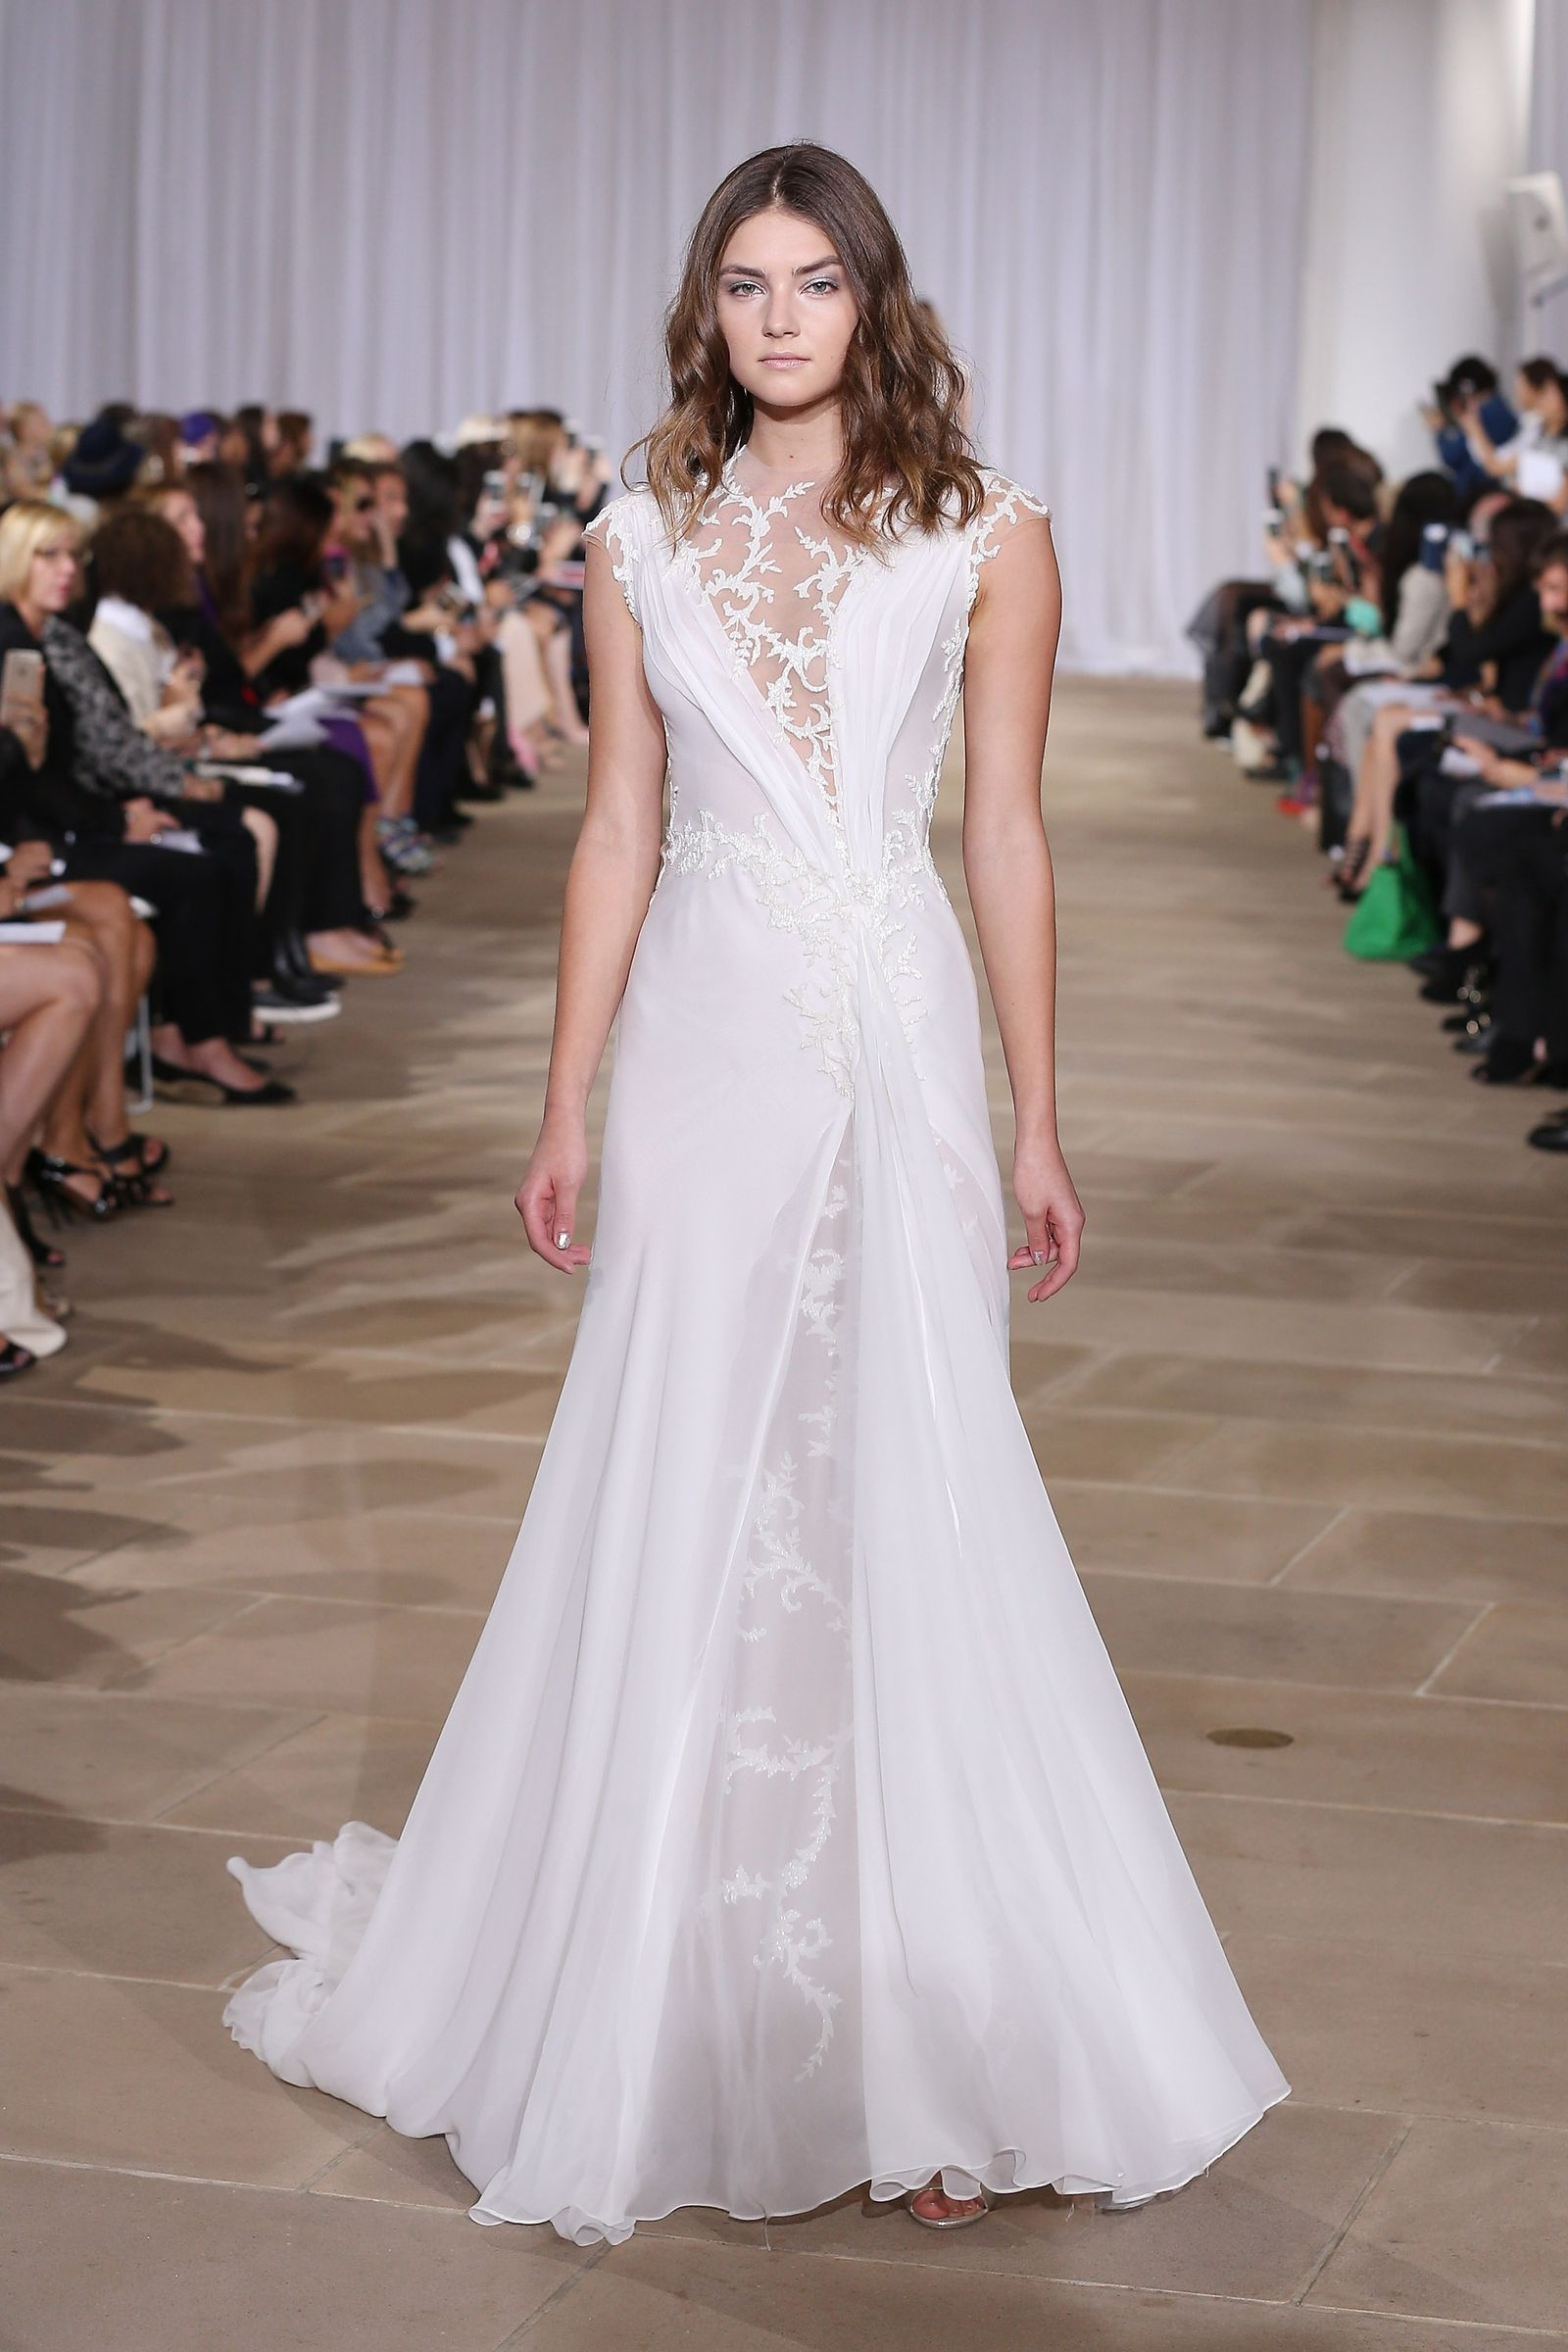 Elite wedding dresses  Best in Bridal Vera Wang Fall   White gowns Wedding dress and